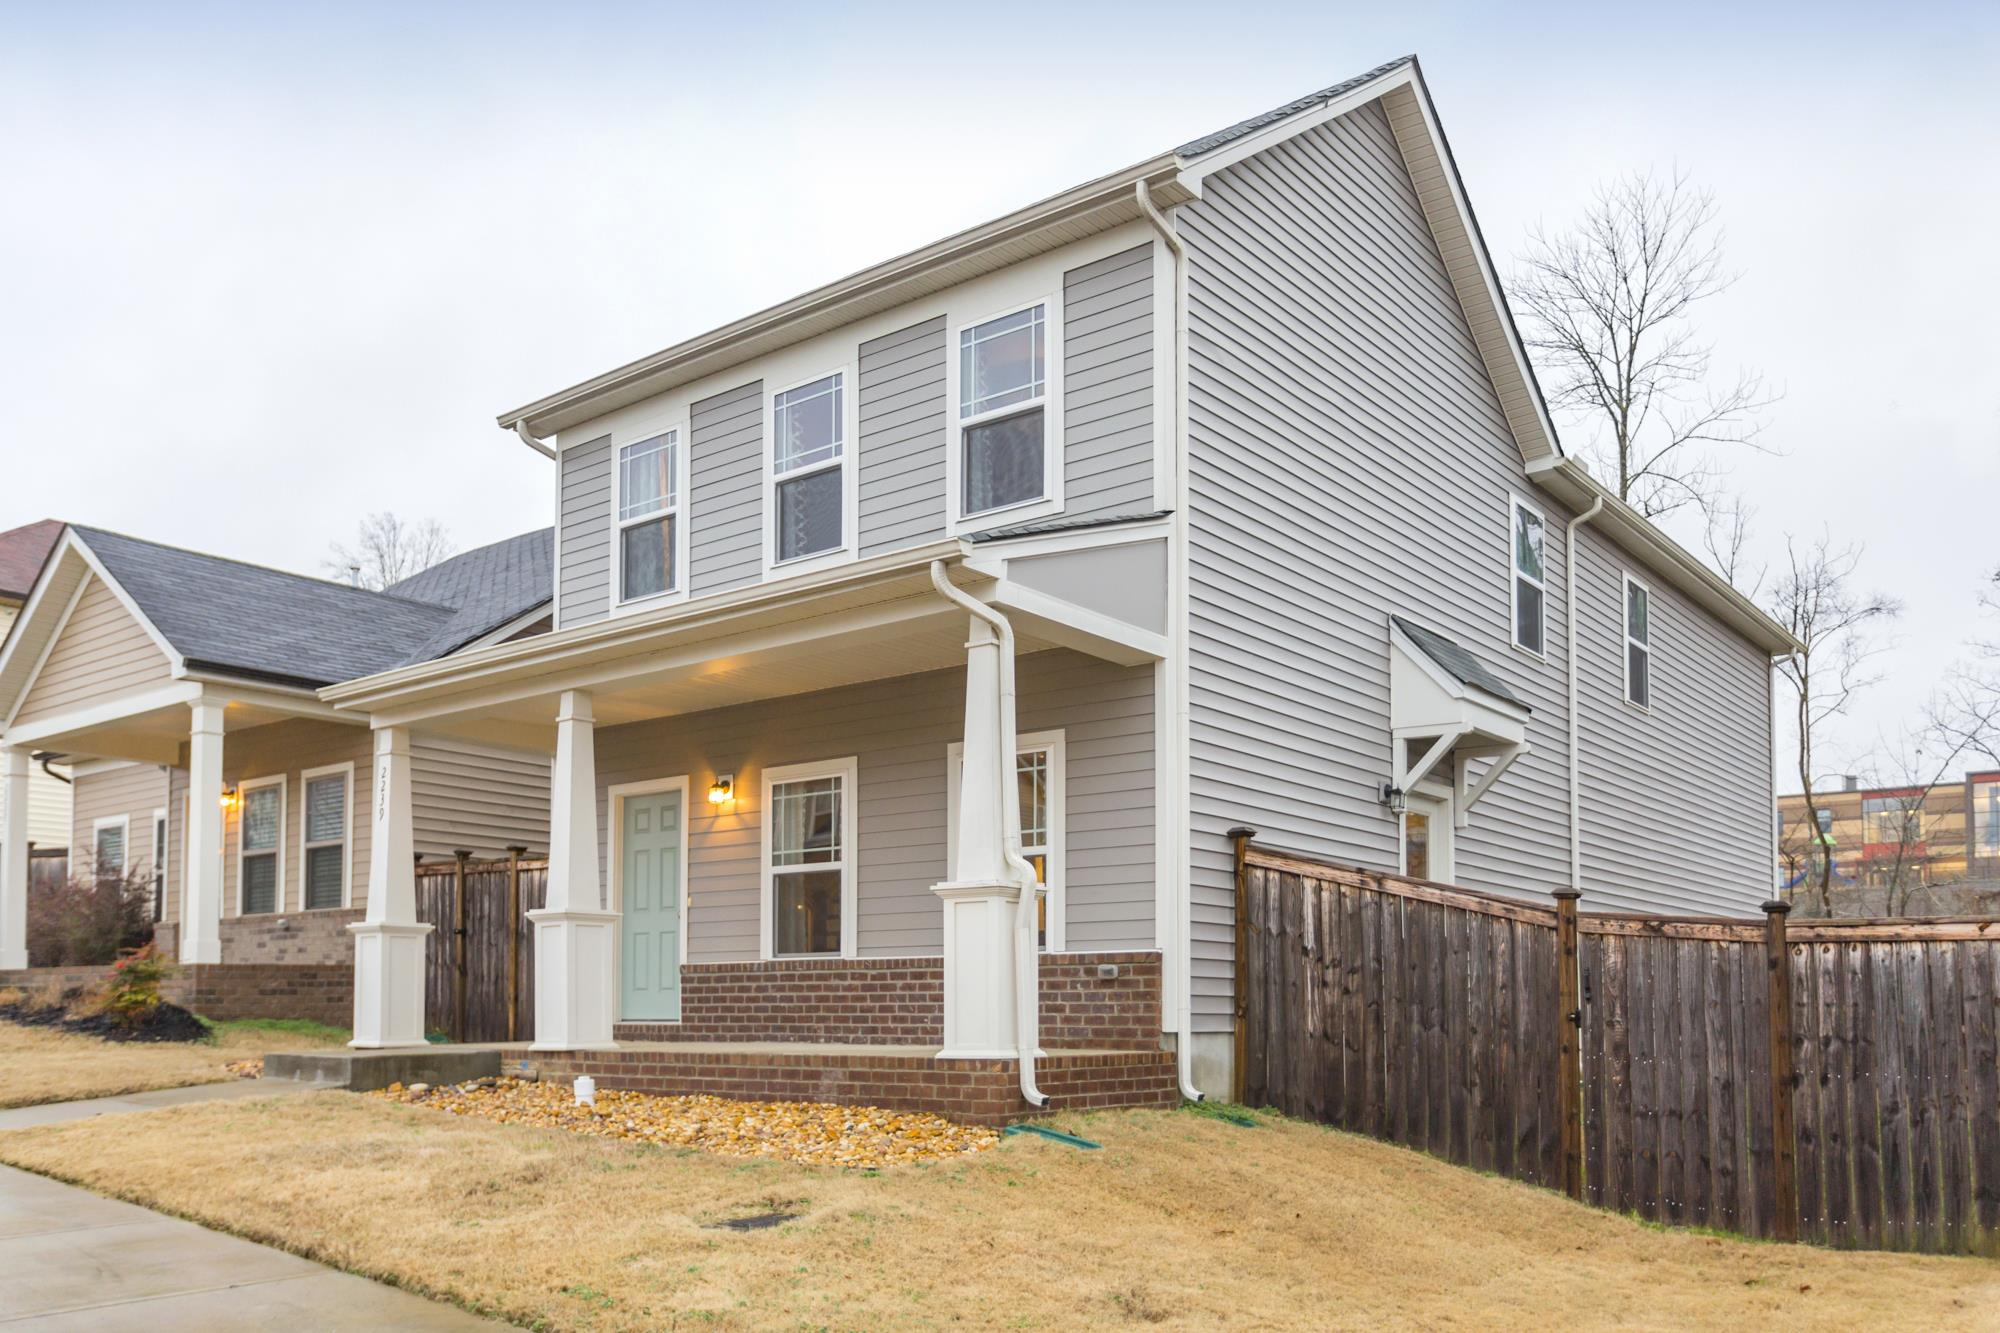 2239 Dale View Dr, Nashville-Antioch in Davidson County County, TN 37013 Home for Sale